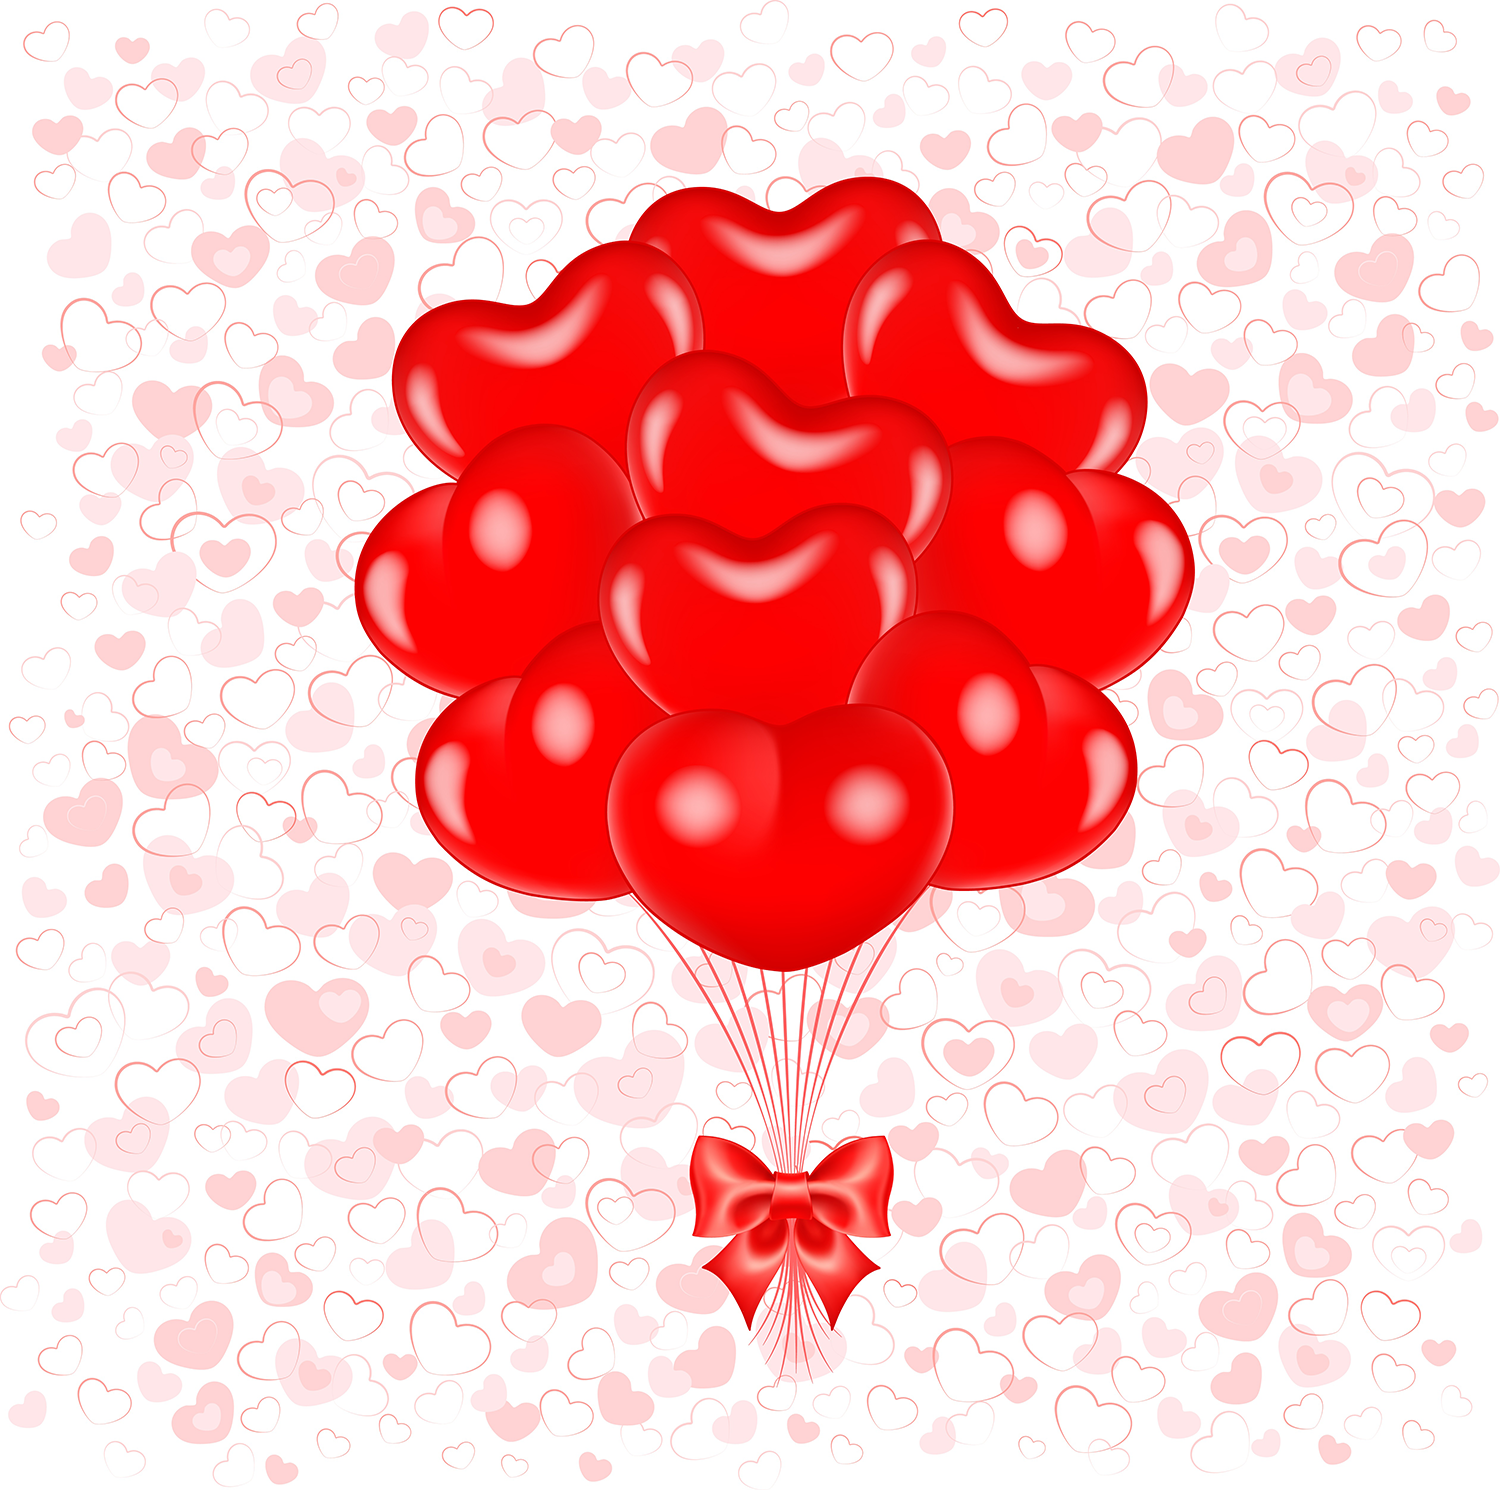 Sweet ,heart,clipart,valentine,day,saint,valentin,png,cœur,amour,love,red,pink,gold,cupid,cupidon,cluster,png,diamond,rainbow,color,balloon,ballon,